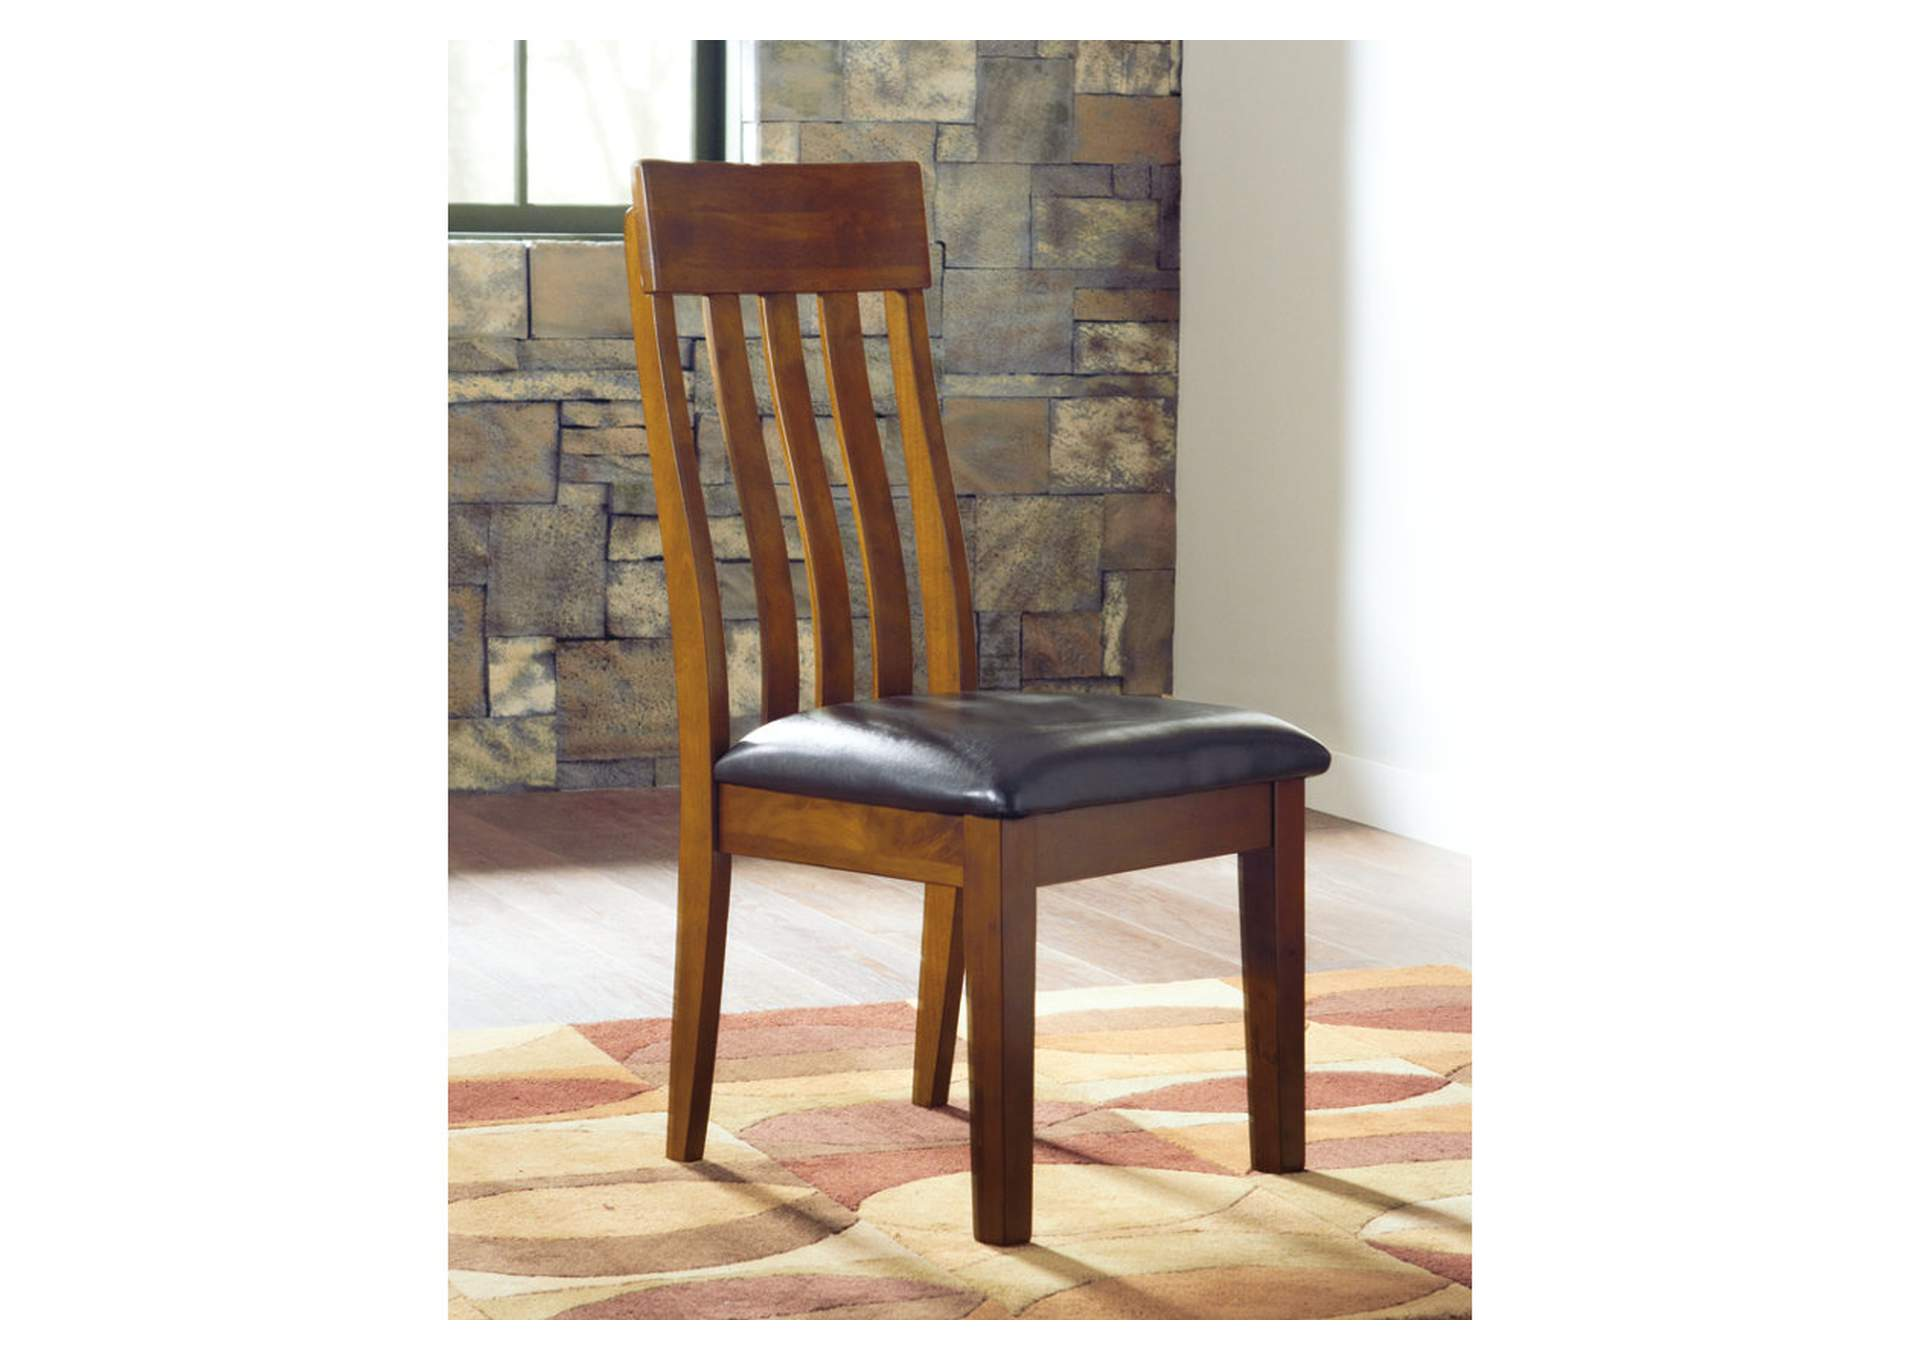 Kemper Sales Ralene Upholstered Side Chair Set of 2 : D594 01 from www.kemperfurnitureinc.com size 1050 x 744 jpeg 131kB